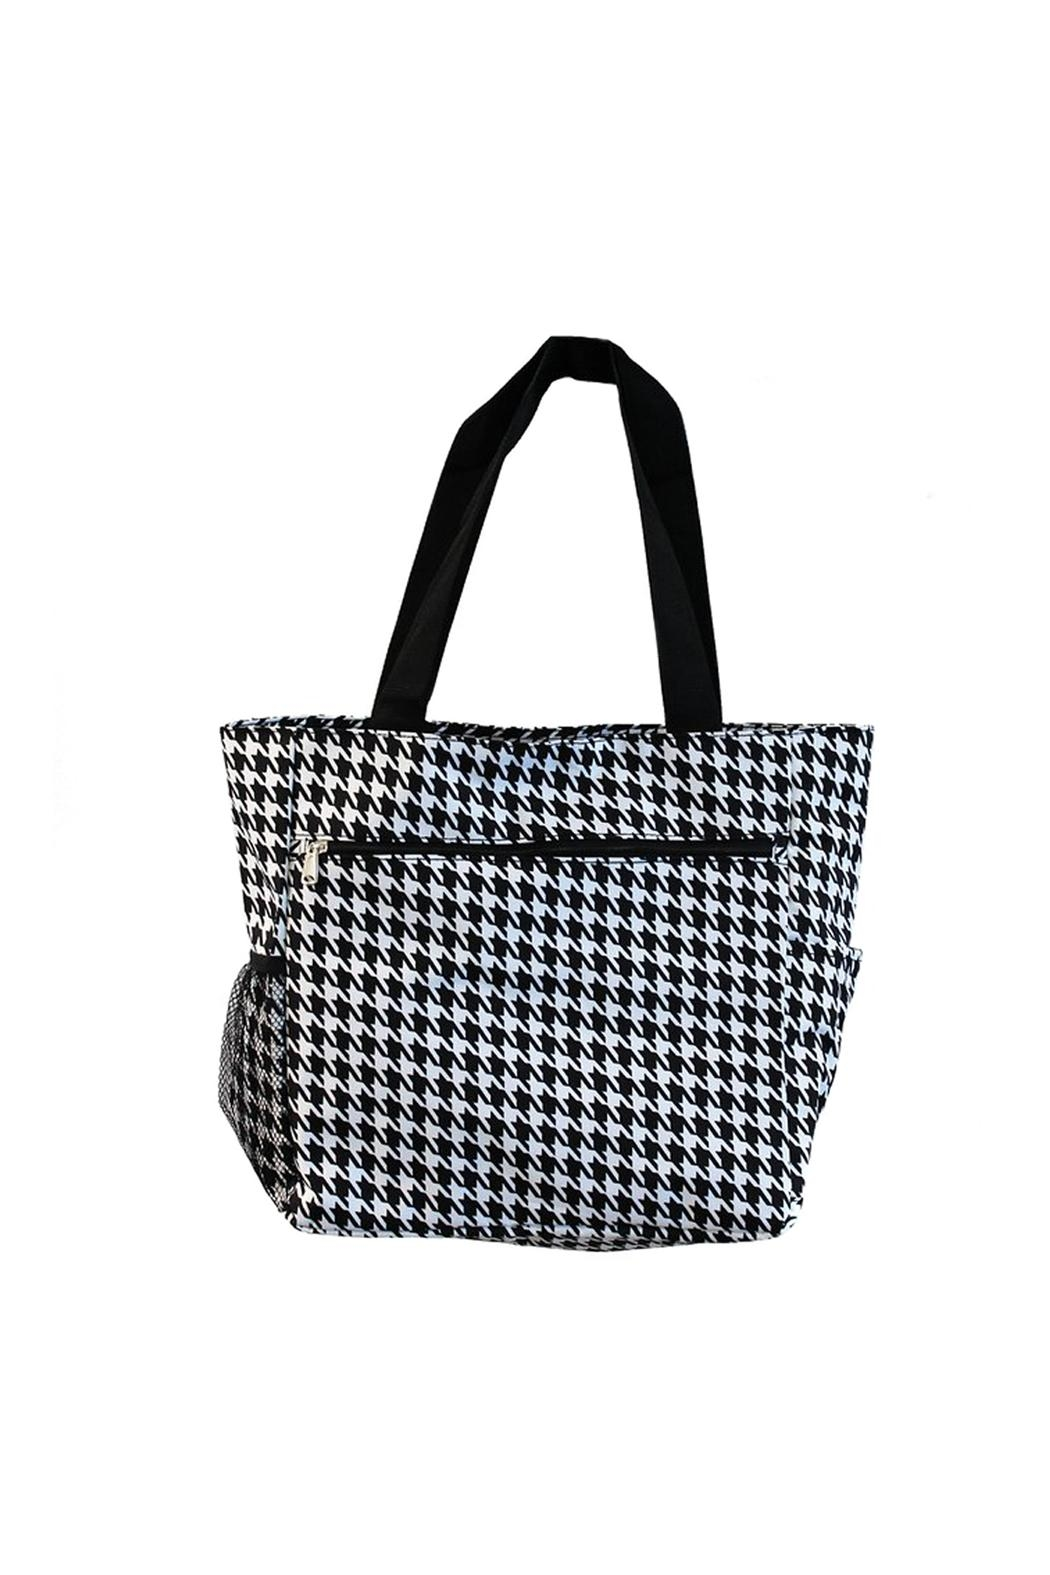 JChronicles Beach Tote Bags - Front Cropped Image